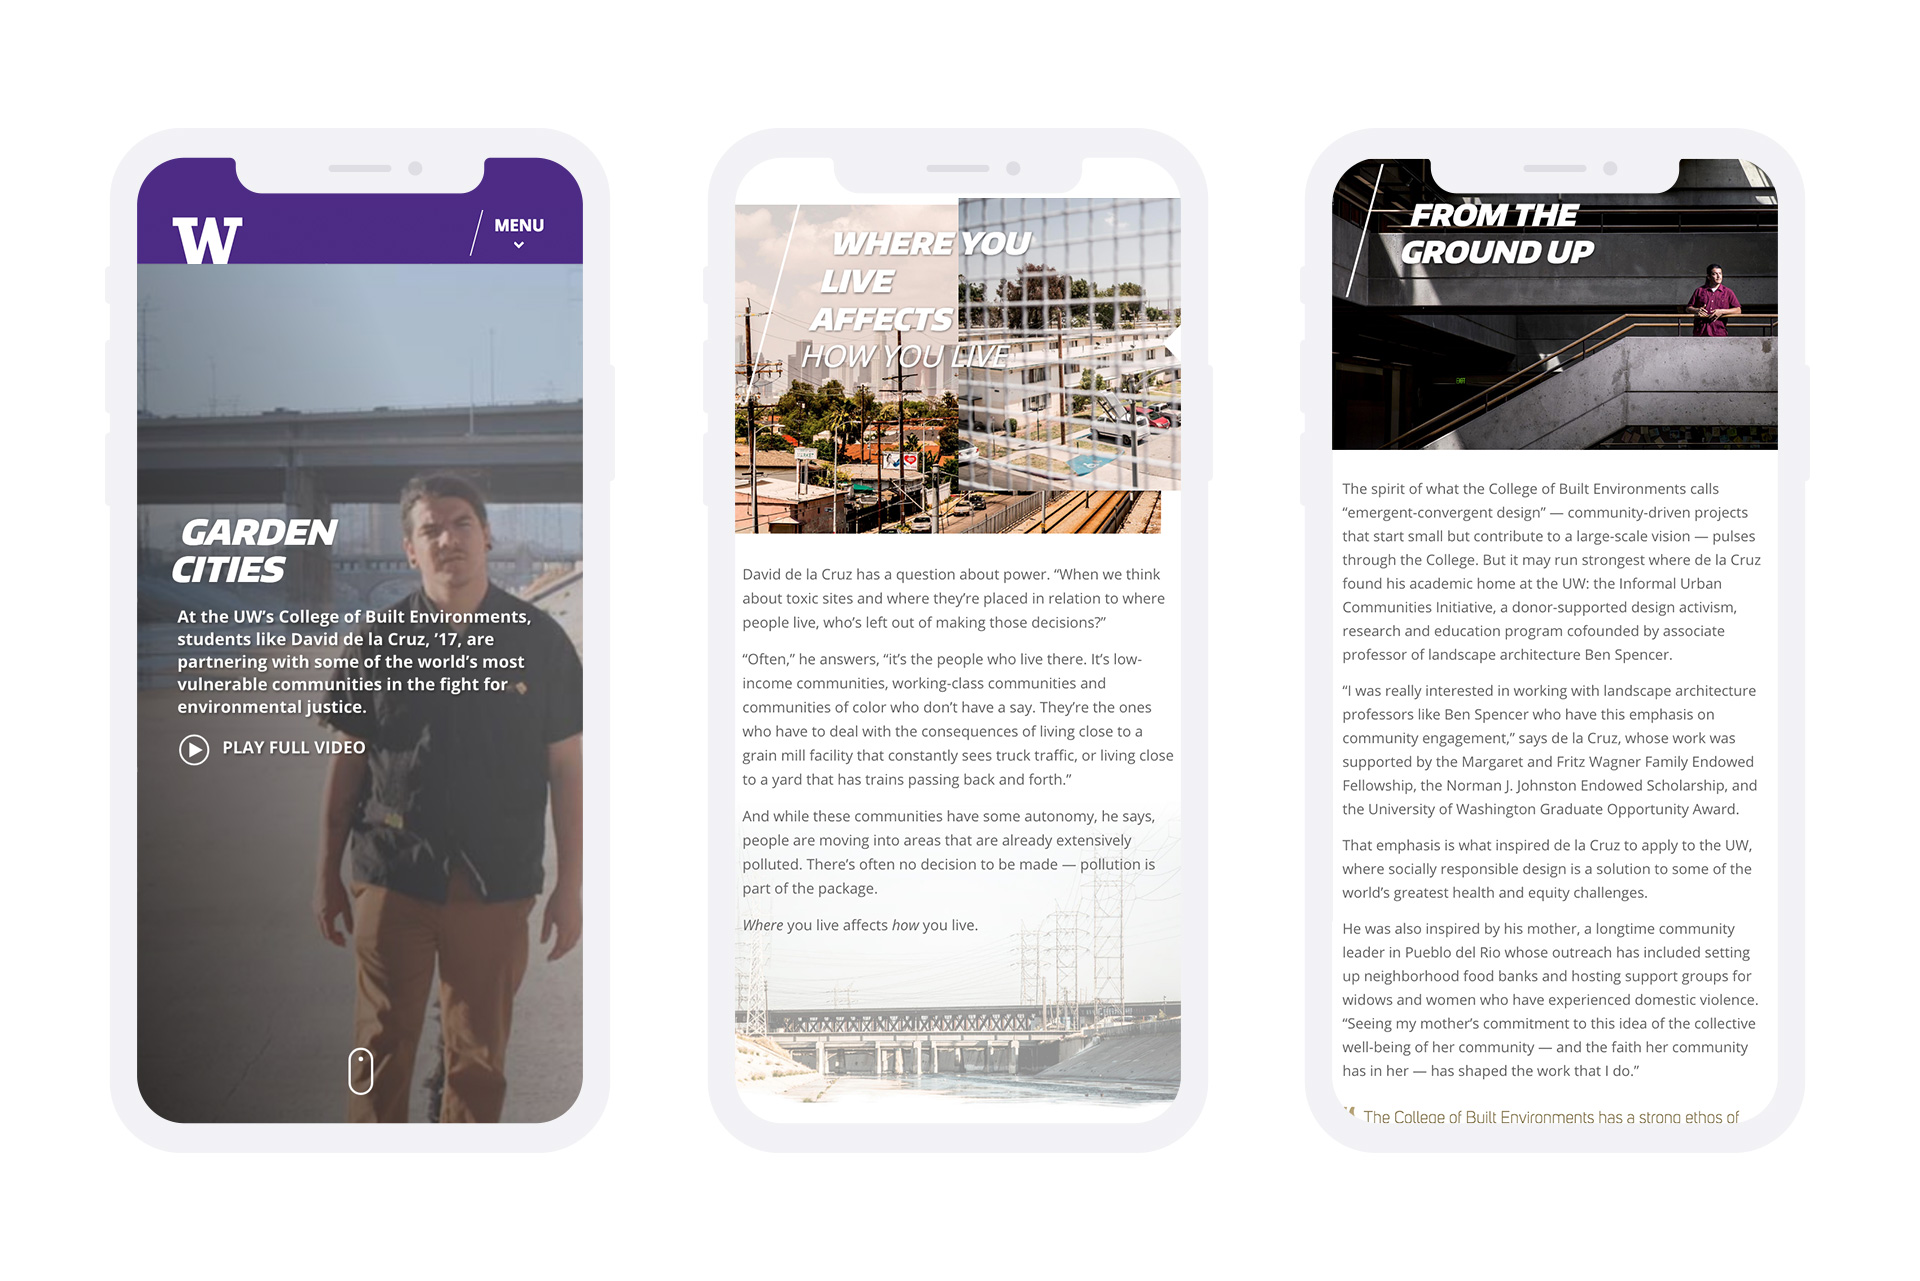 university of washington college of biult environment mobile site design